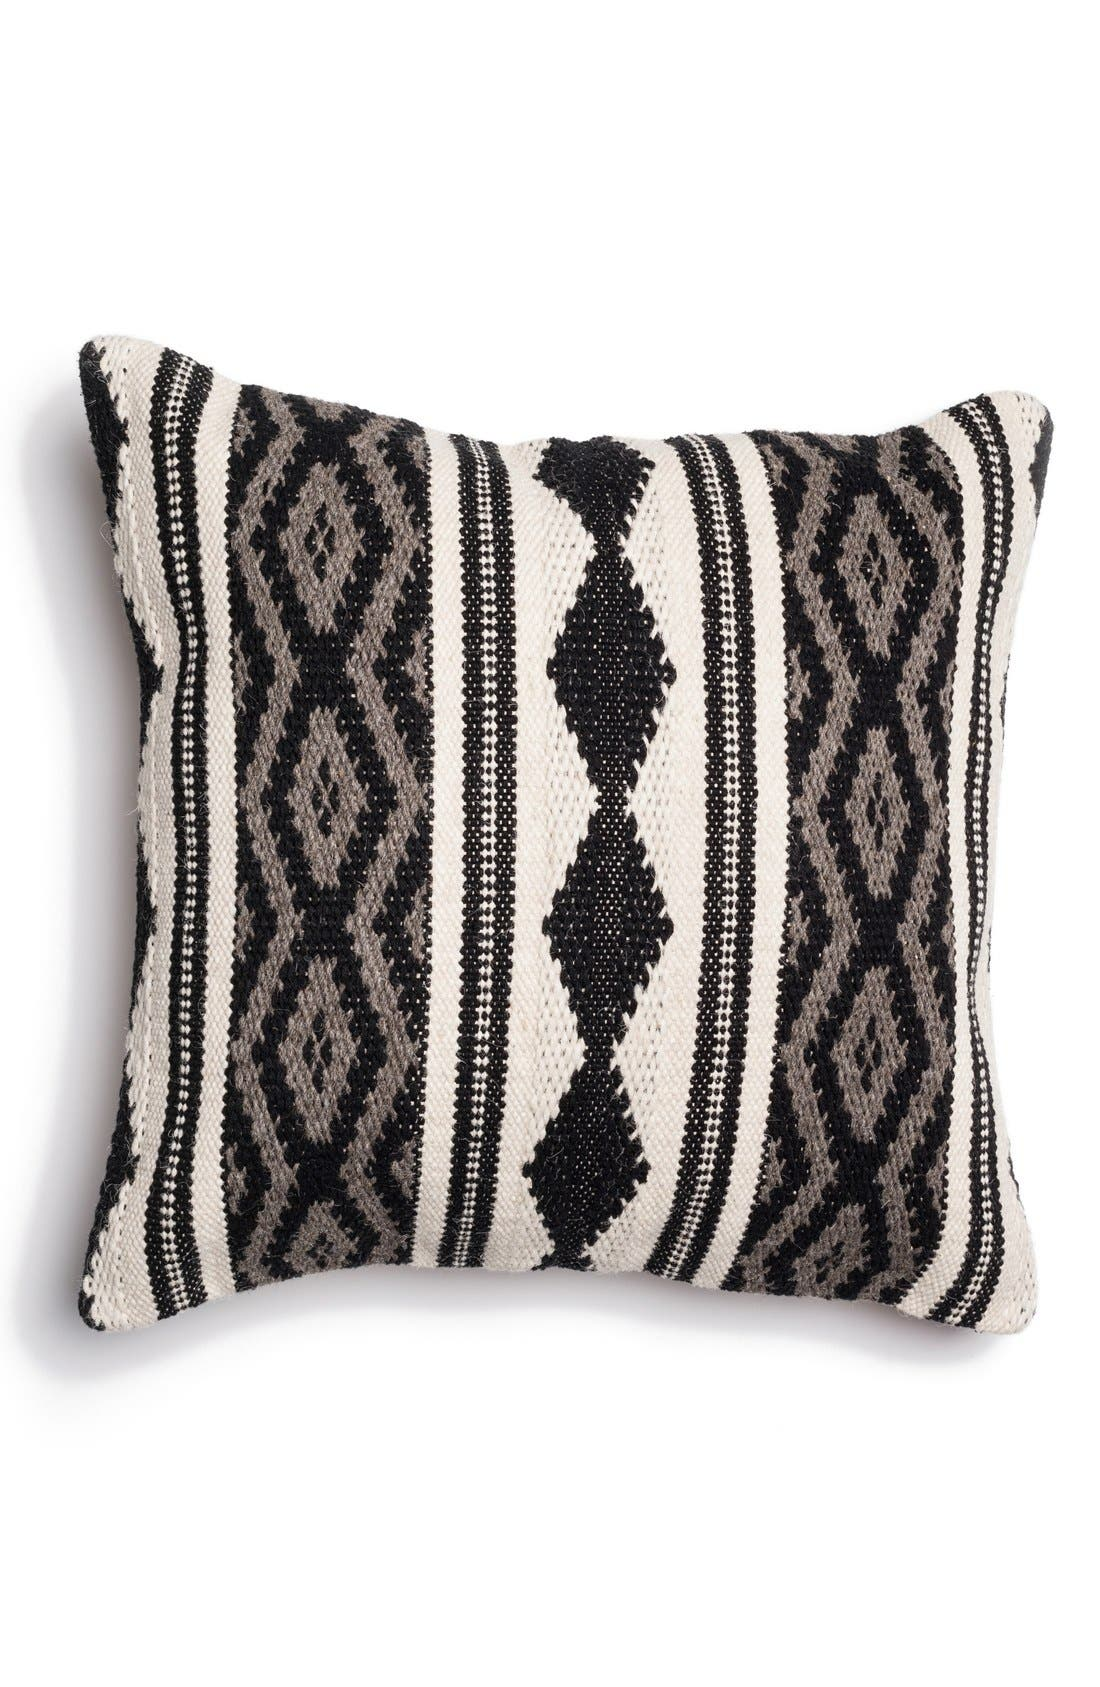 Alternate Image 1 Selected - Loloi Woven Cotton & Wool Accent Pillow